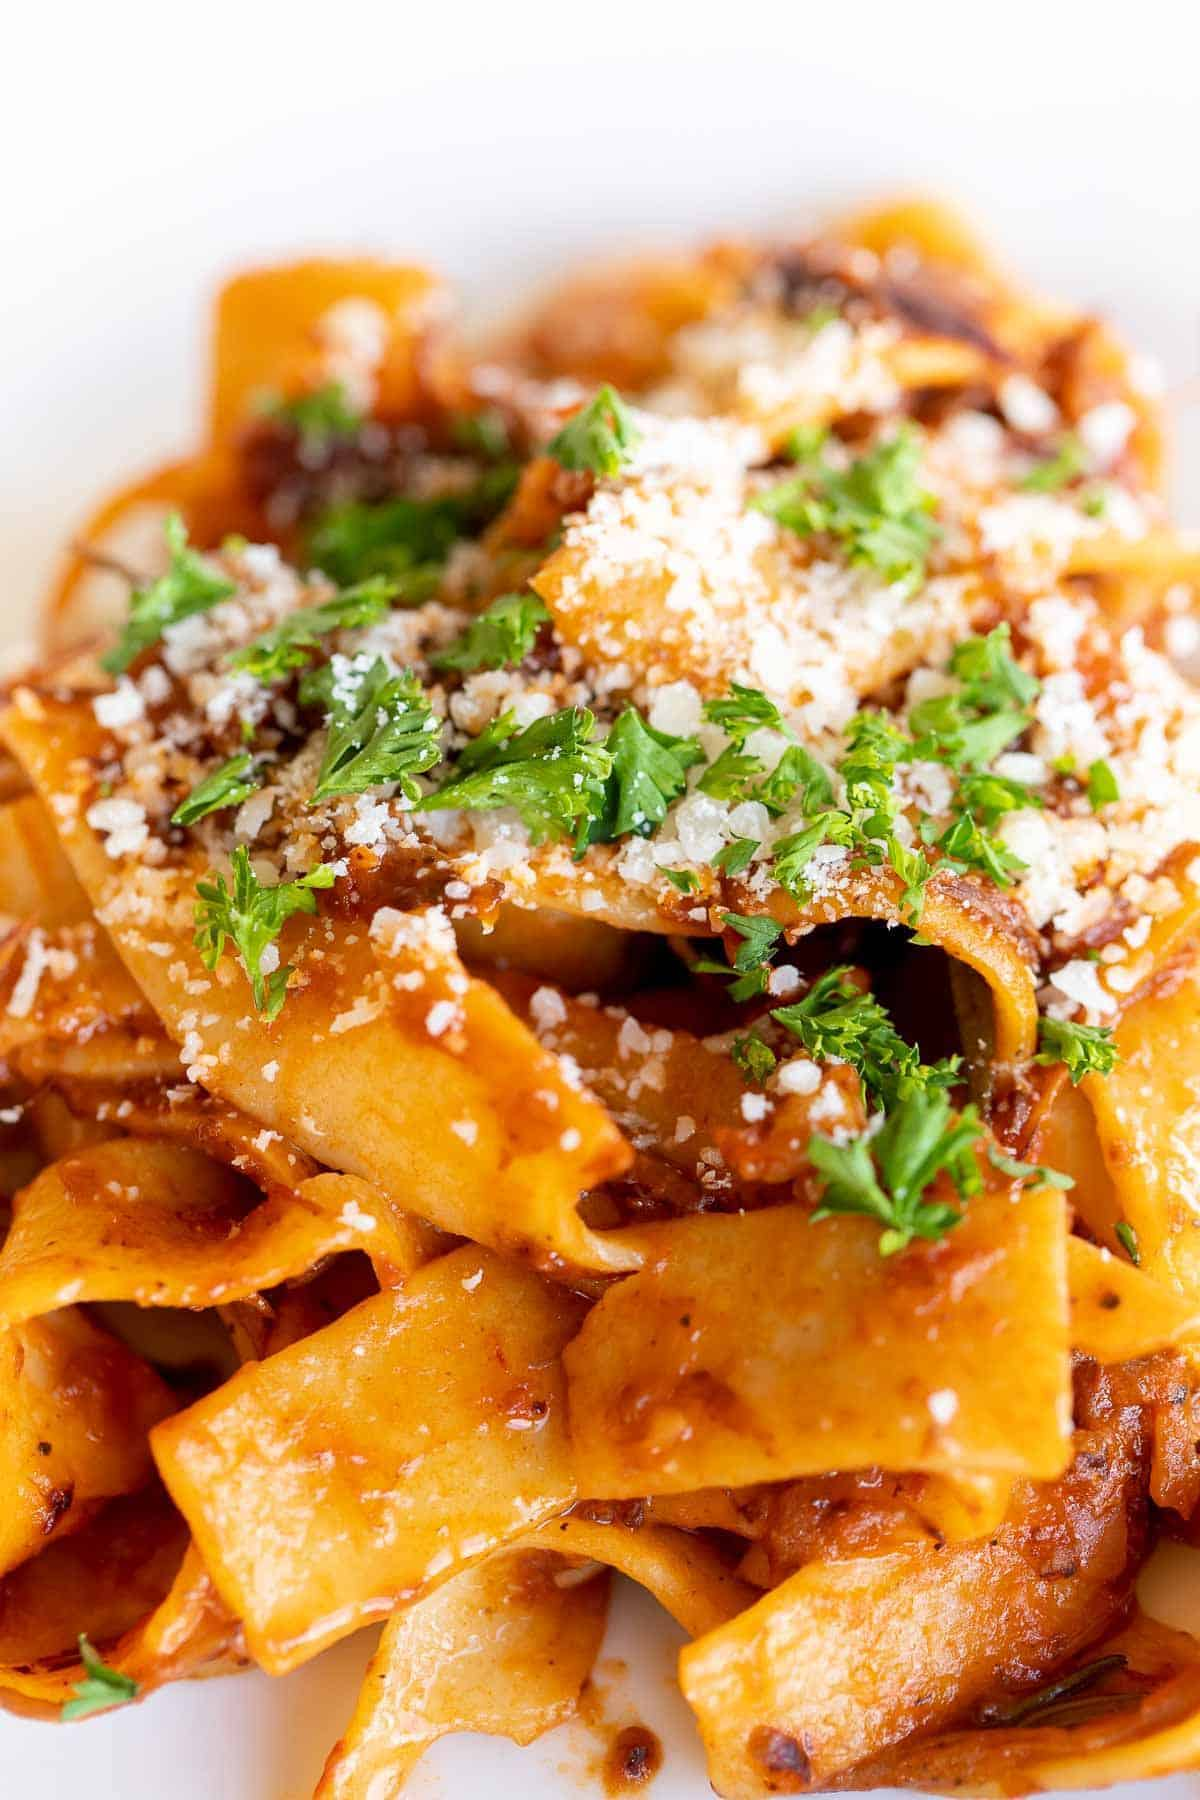 A close up of pappardalle pasta with beef ragu sauce, topped with parsley and parmesan.